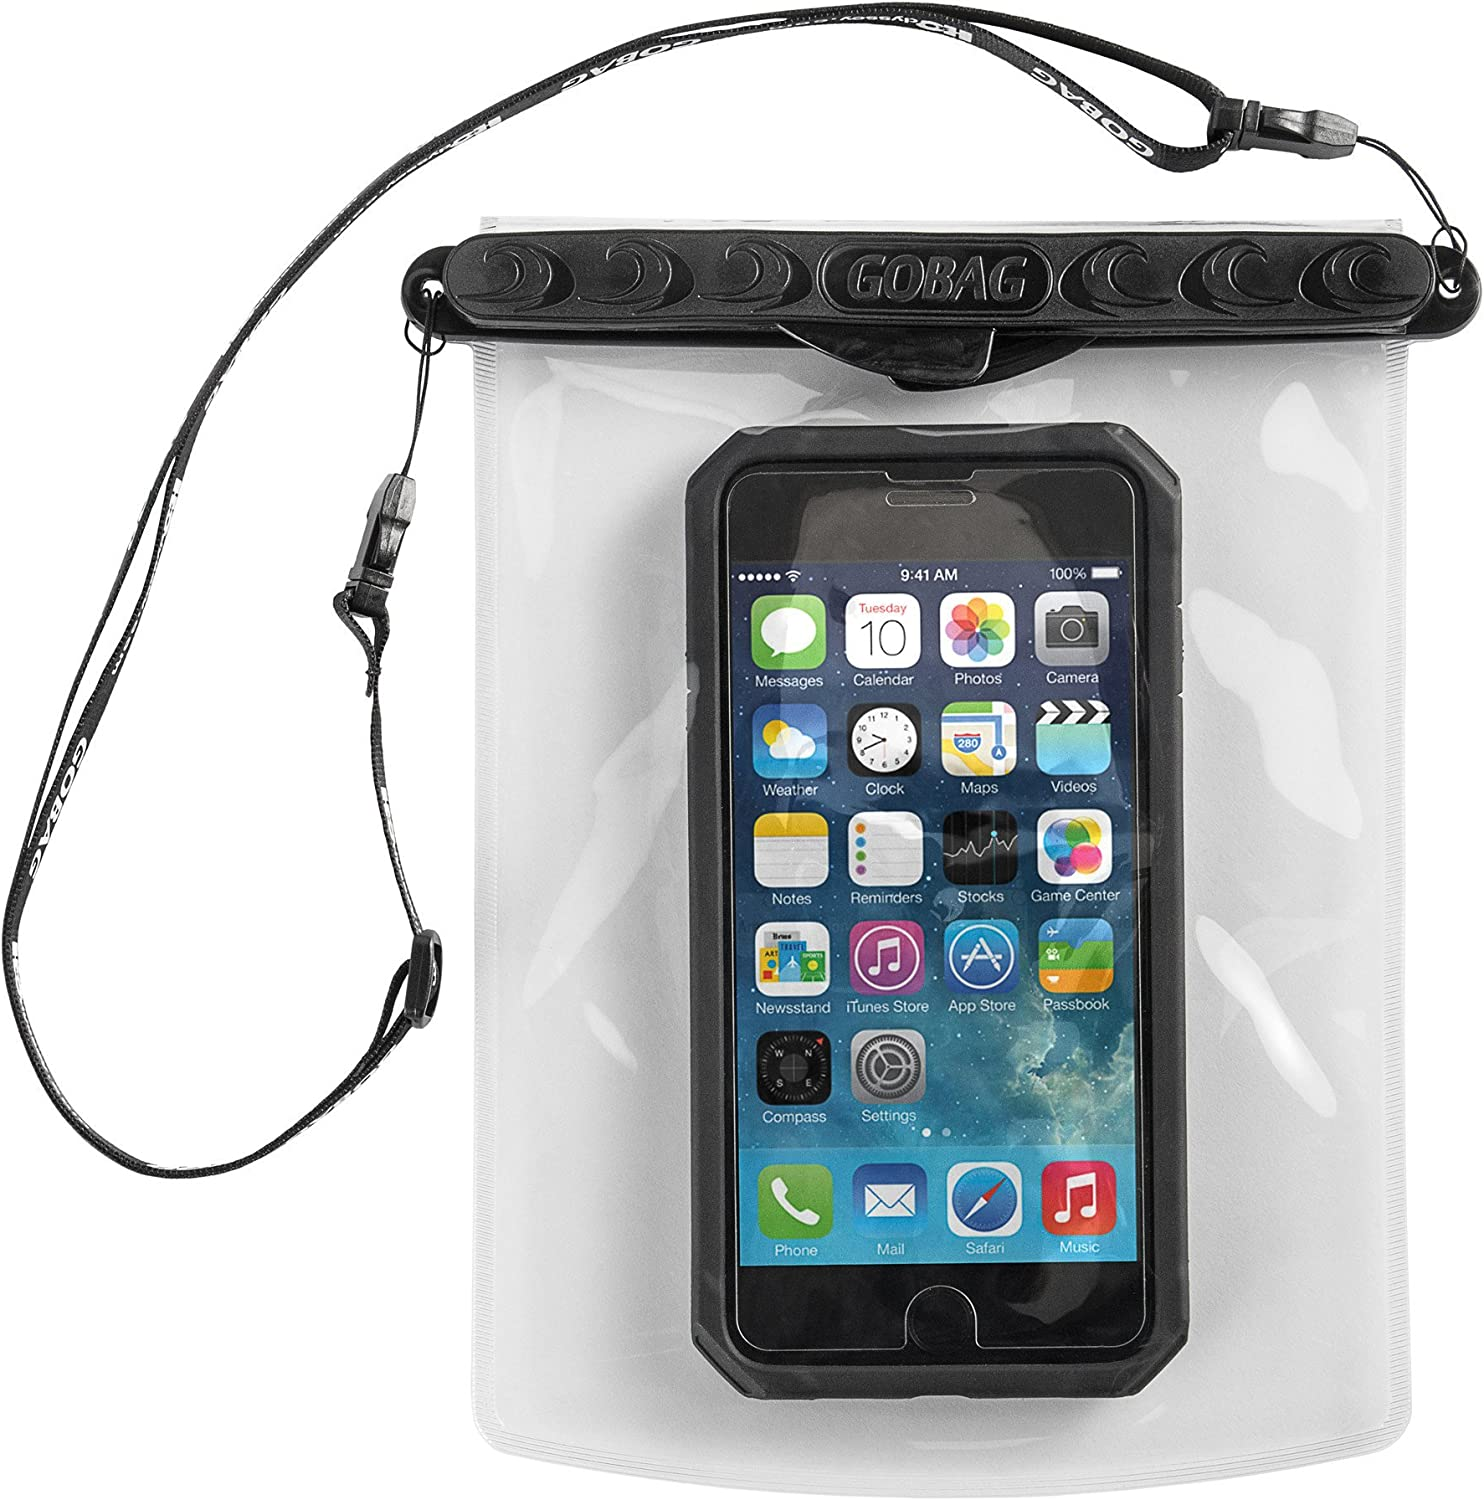 Go Bag Mako Dry Bag #1 Secure Air Tight Self-Sealing Magnetic Waterproof Case to 100 ft. Hermetic Seal Cell Phone Touchscreen Sensitive 7.5